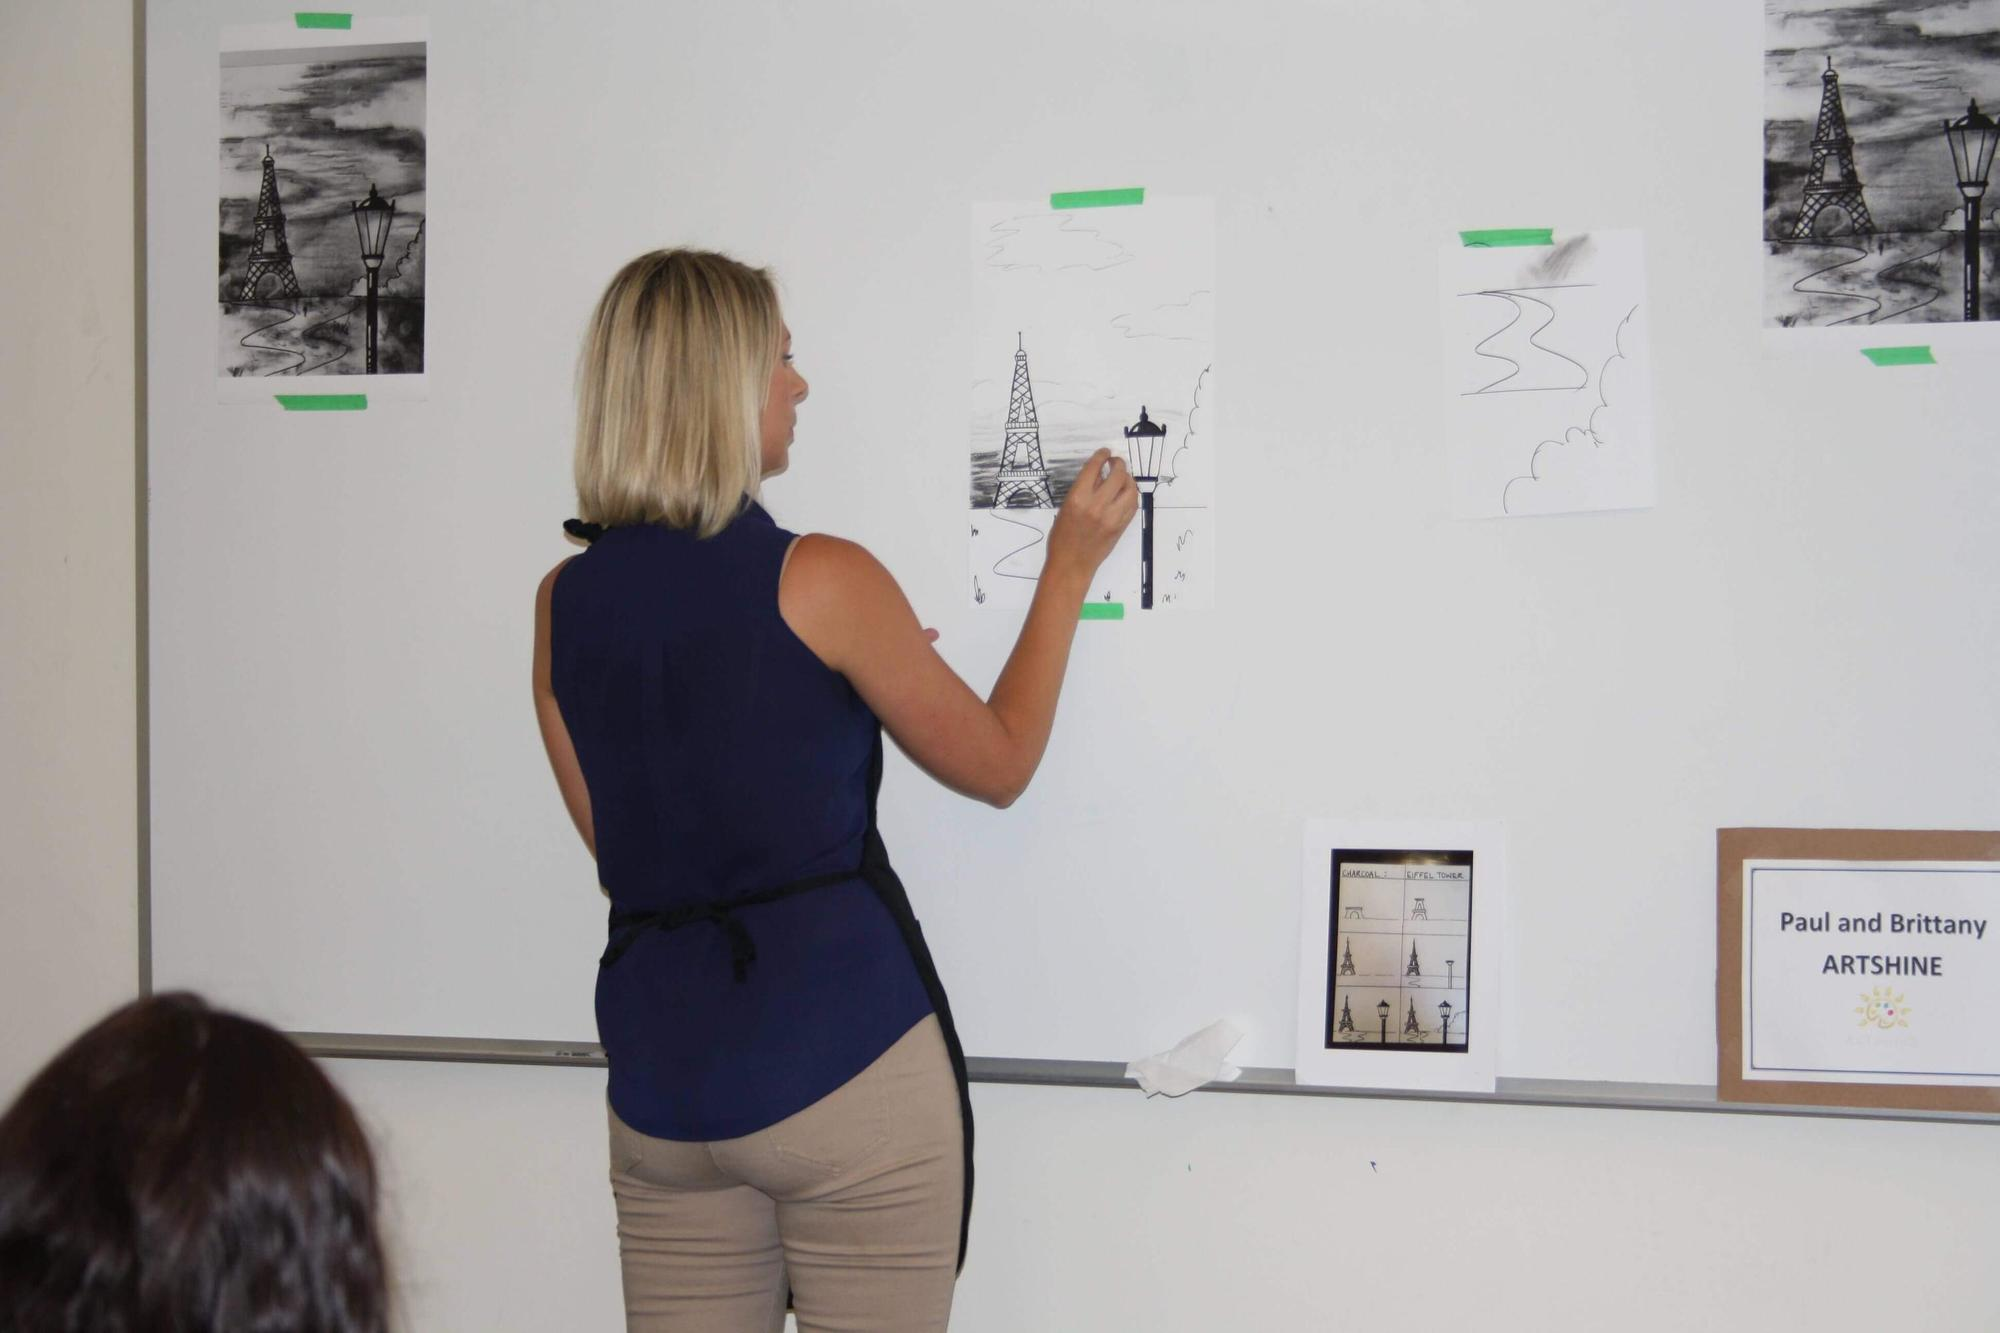 Instructor teaching how to draw